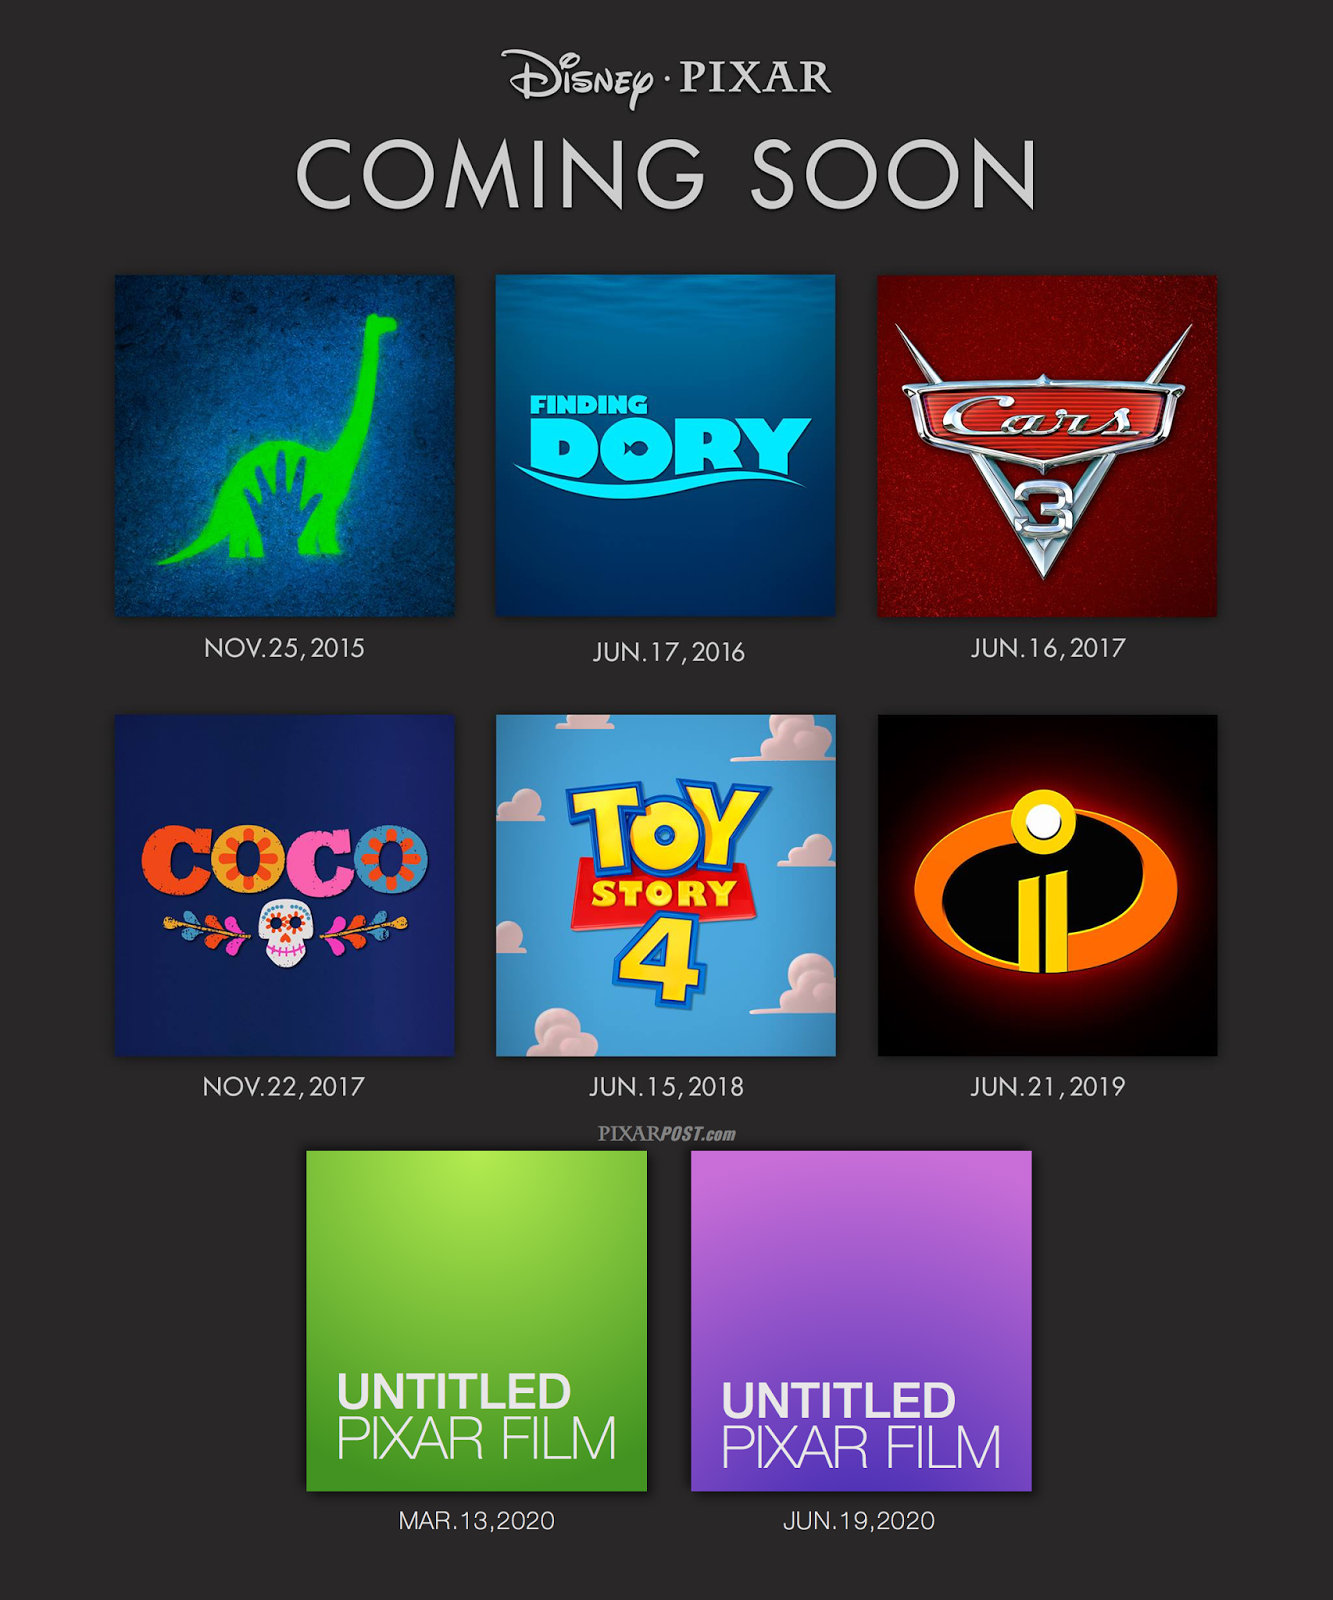 Pair of Untitled Pixar Films Coming in 2020 Disney pixar